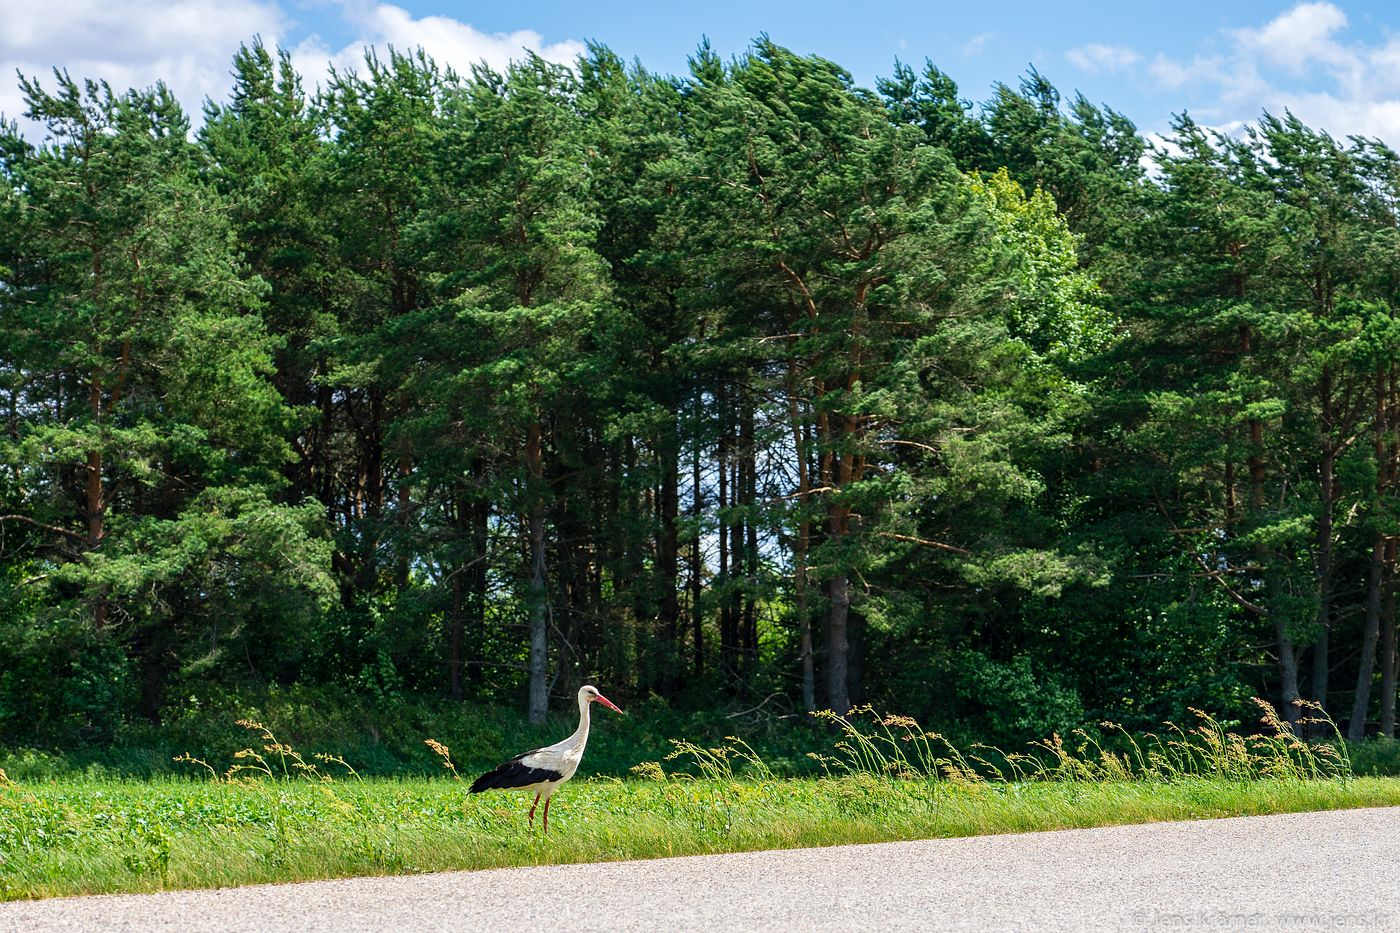 Storks are a common sight in rural Estonia